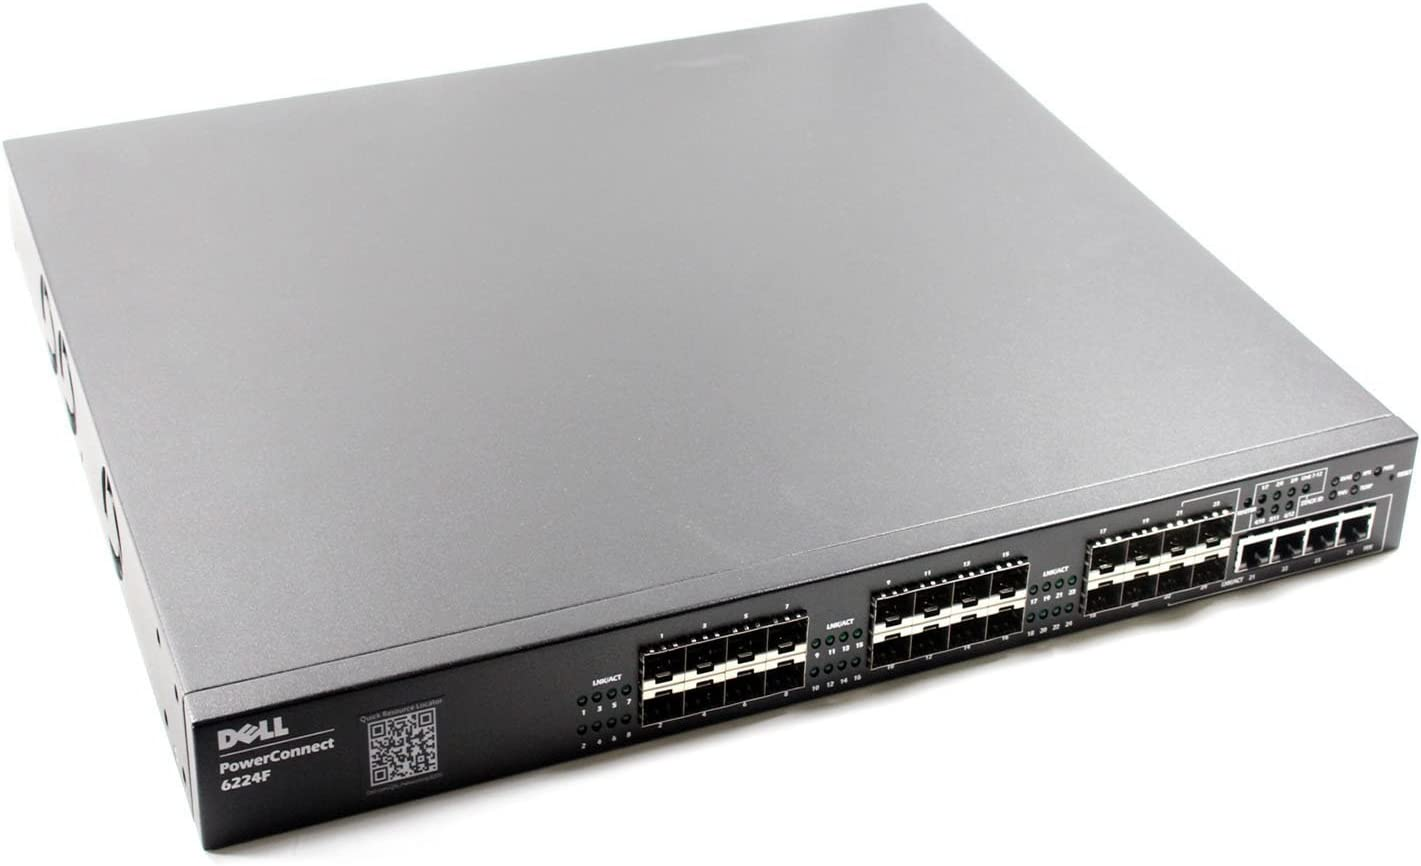 Dell Powerconnect 6224F 24 Ports 1GB Rack Mounted Fibre Ethernet Switch RR224